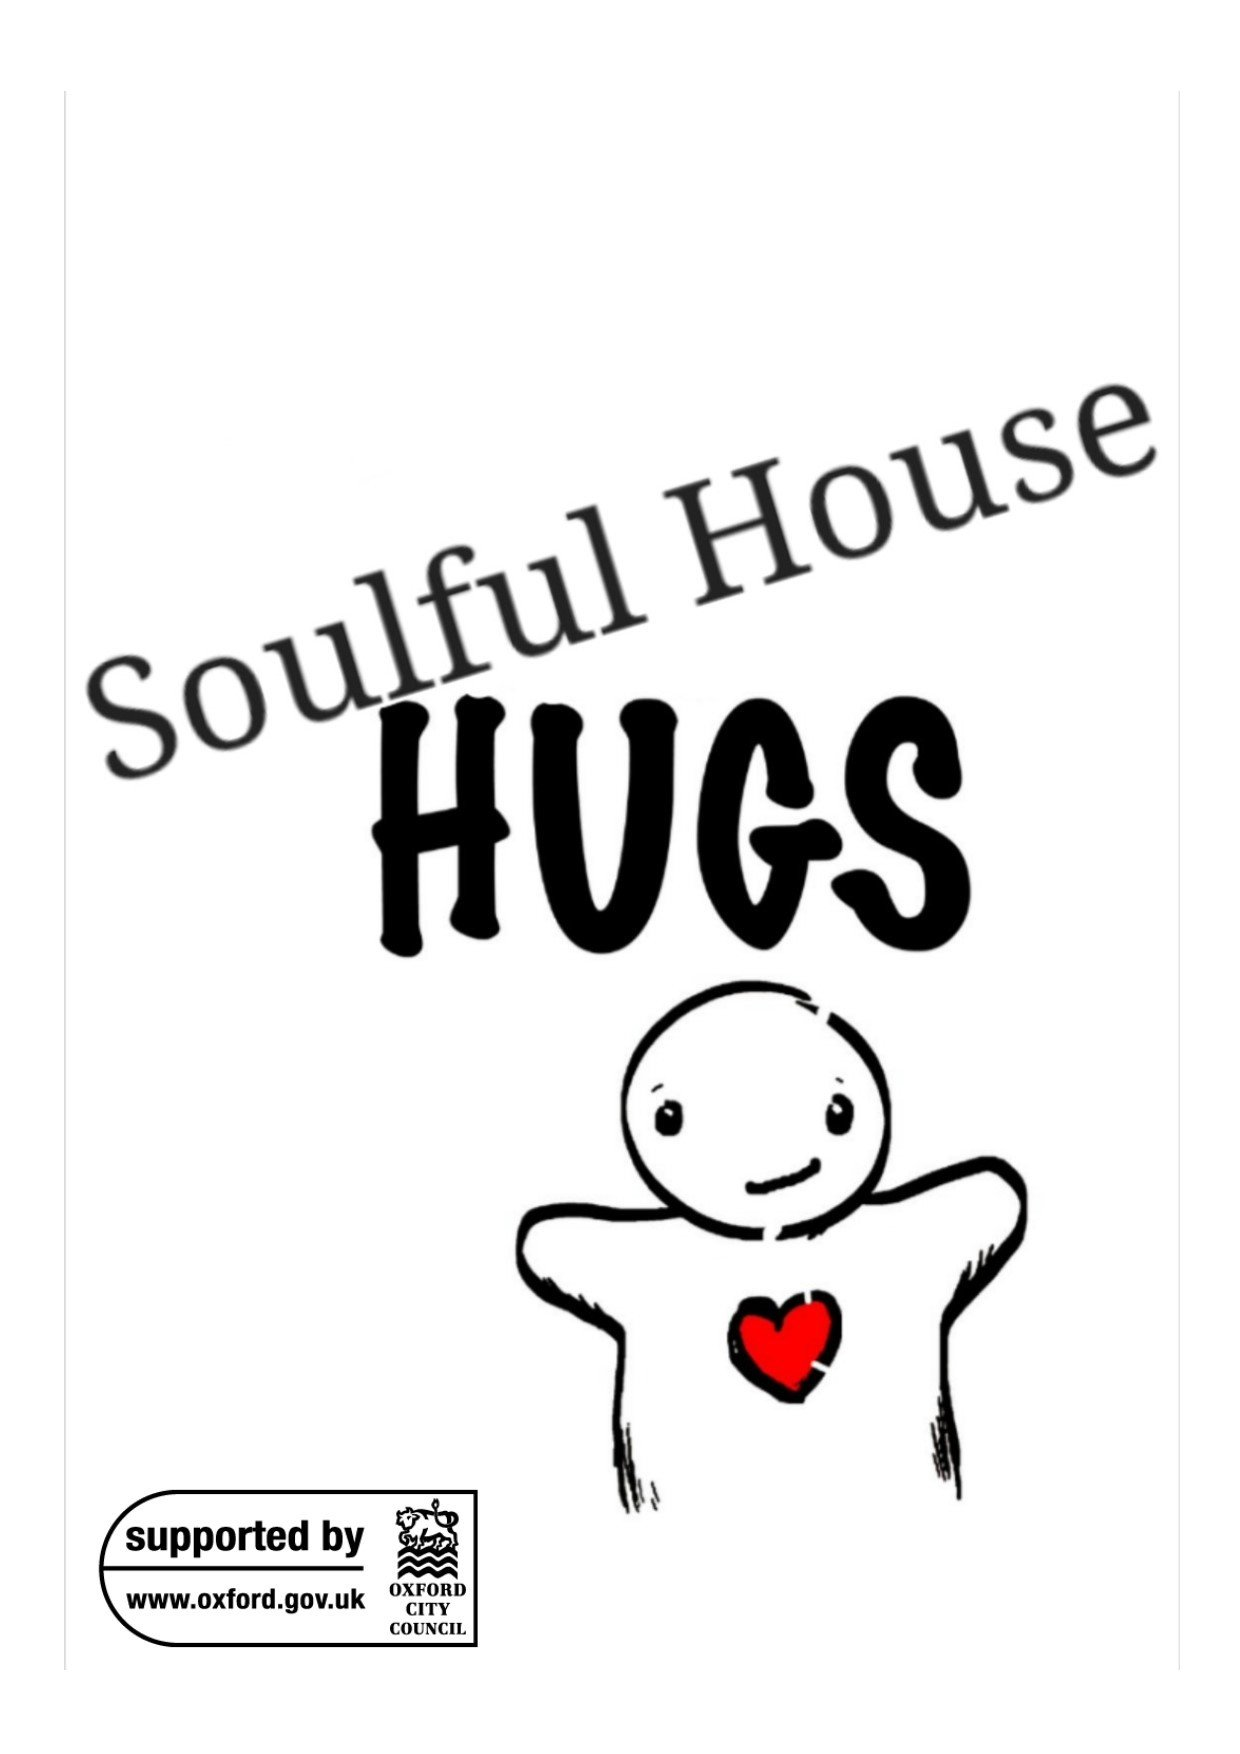 sOULFUL hOUSE hugs